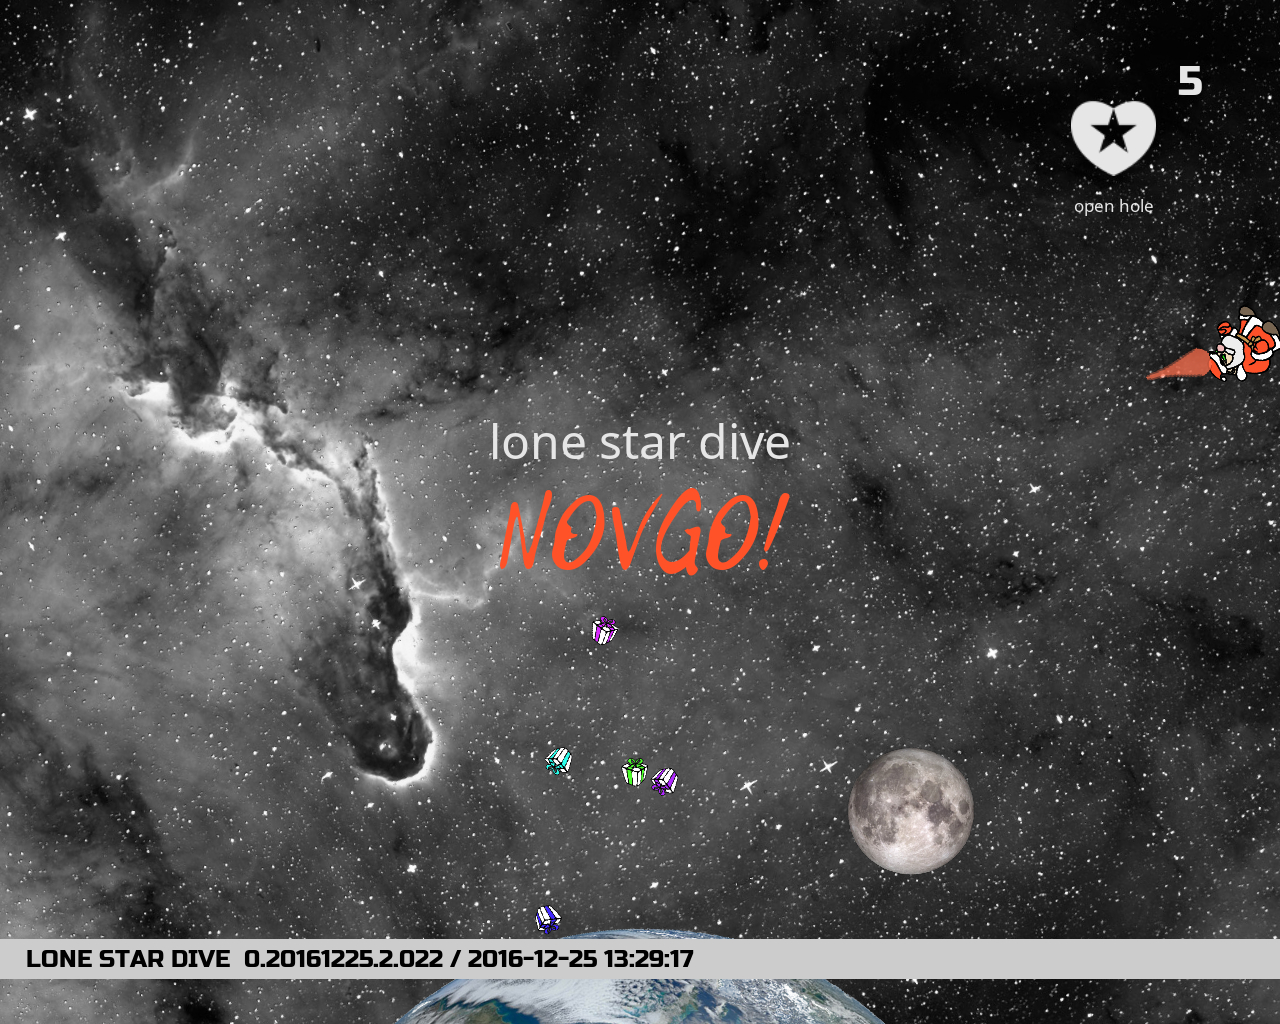 screenshot of gameplay of Lone Star Dive: NOVGO! with logo